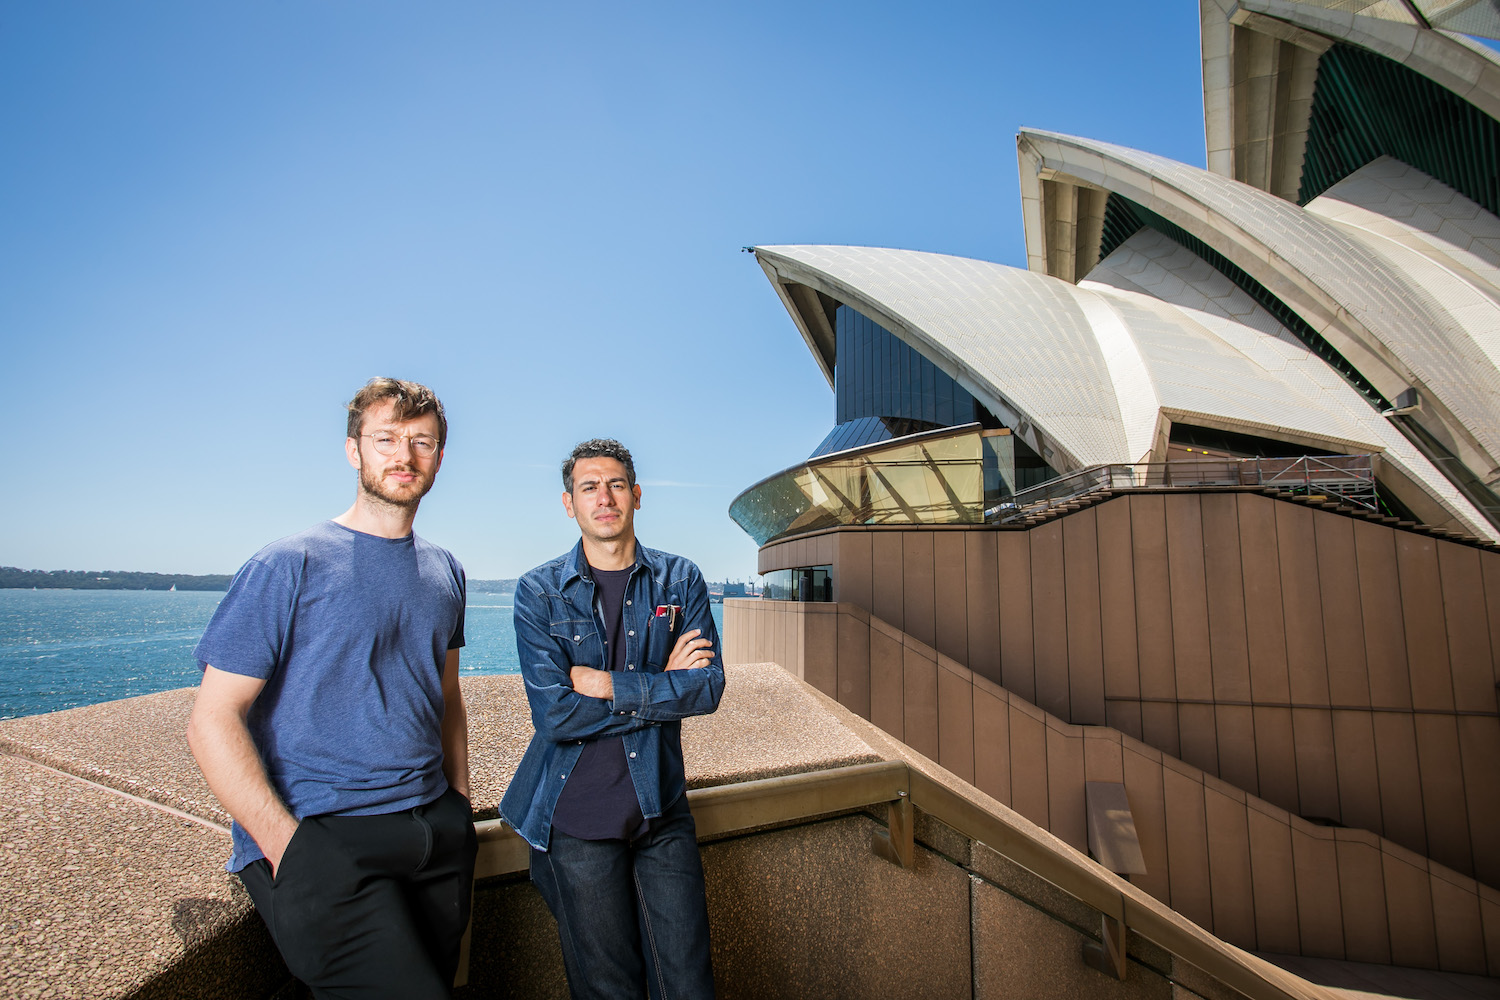 Sydney Biennale artists Oliver Beer and Rayyane Tabet at the Opera House. Photography by Anna Kucera